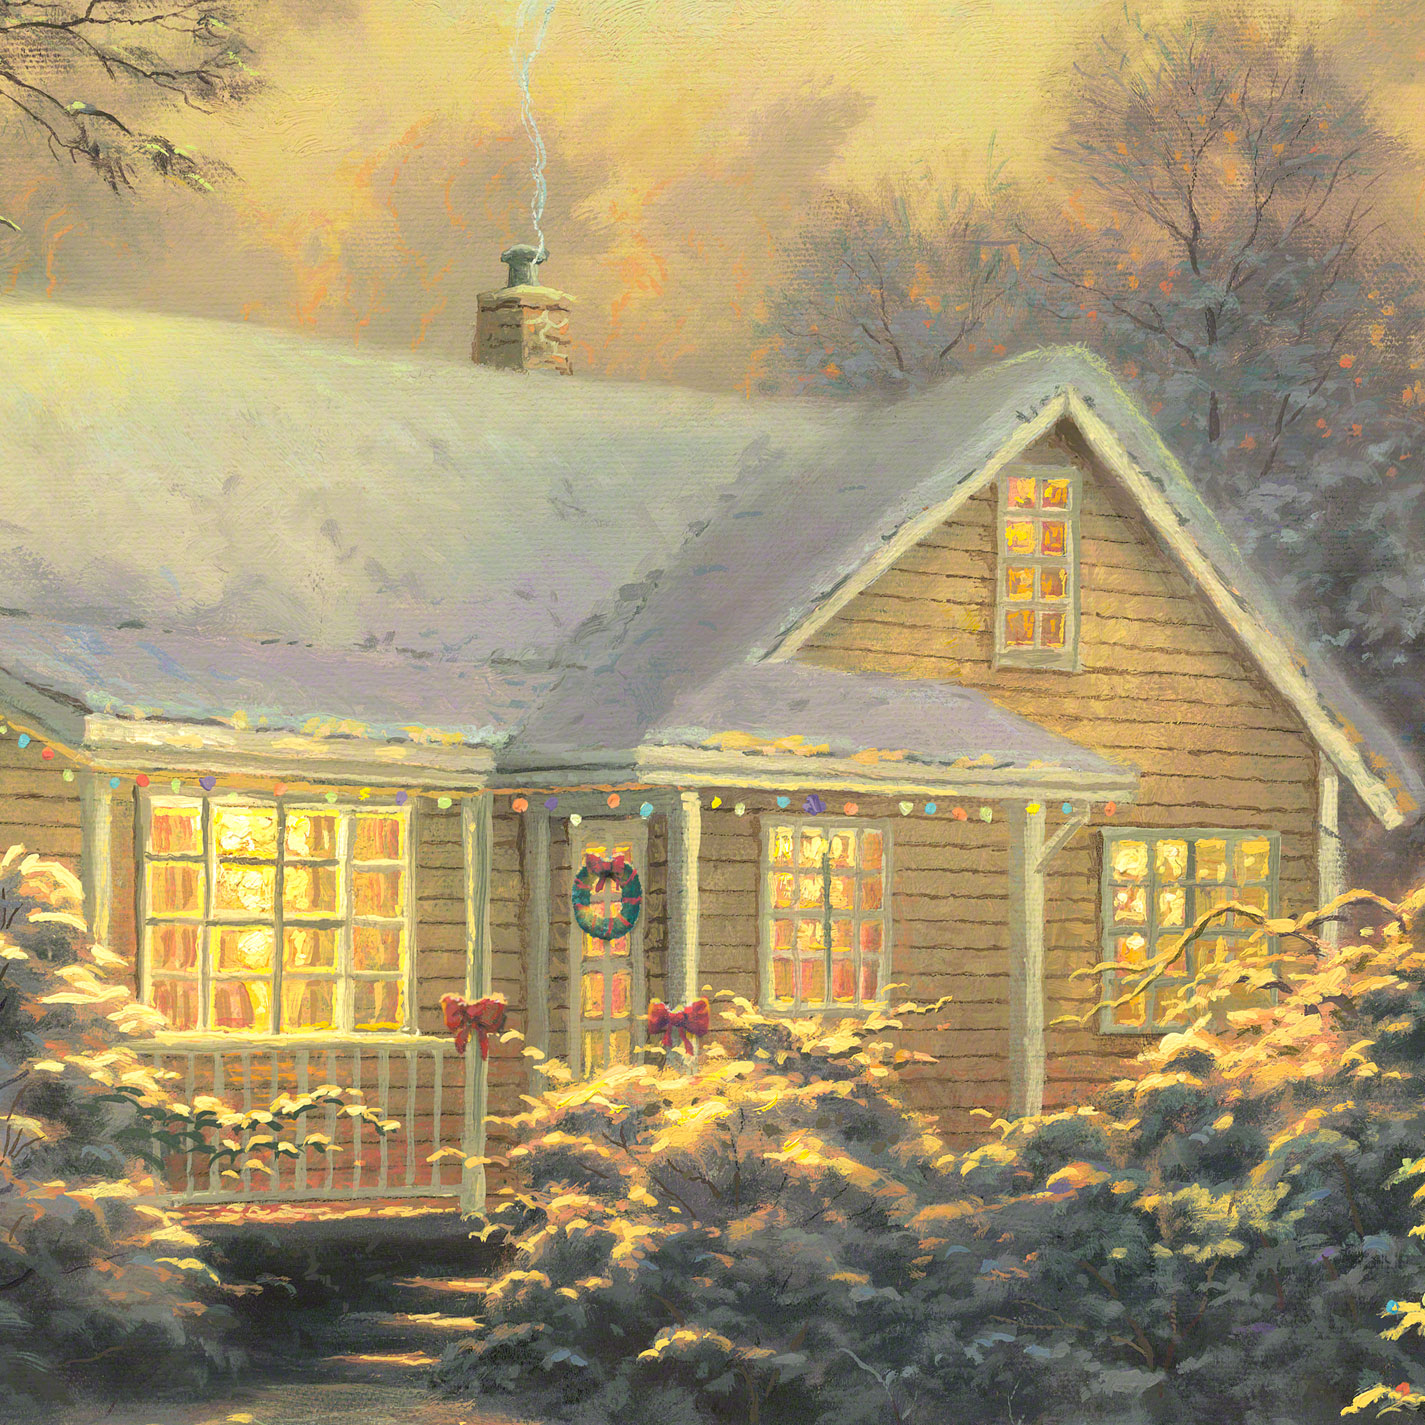 christmas cottage movie release limited edition art thomas rh thomaskinkade com thomas kinkade's christmas cottage streaming thomas kinkade's christmas cottage full movie